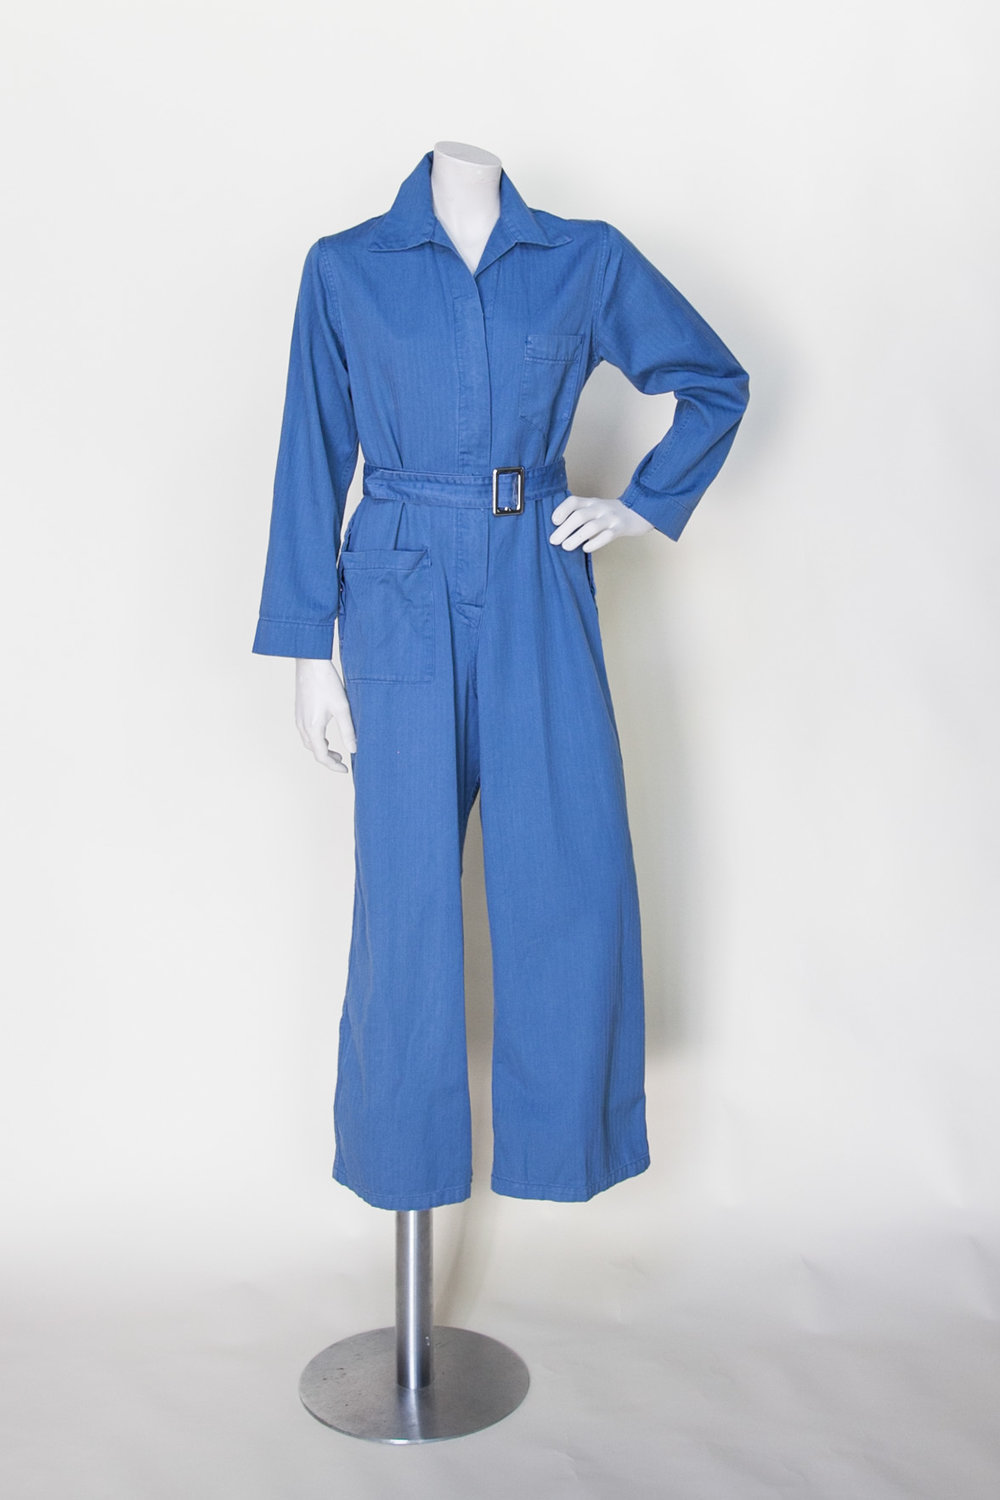 WWII Women's Work Suit